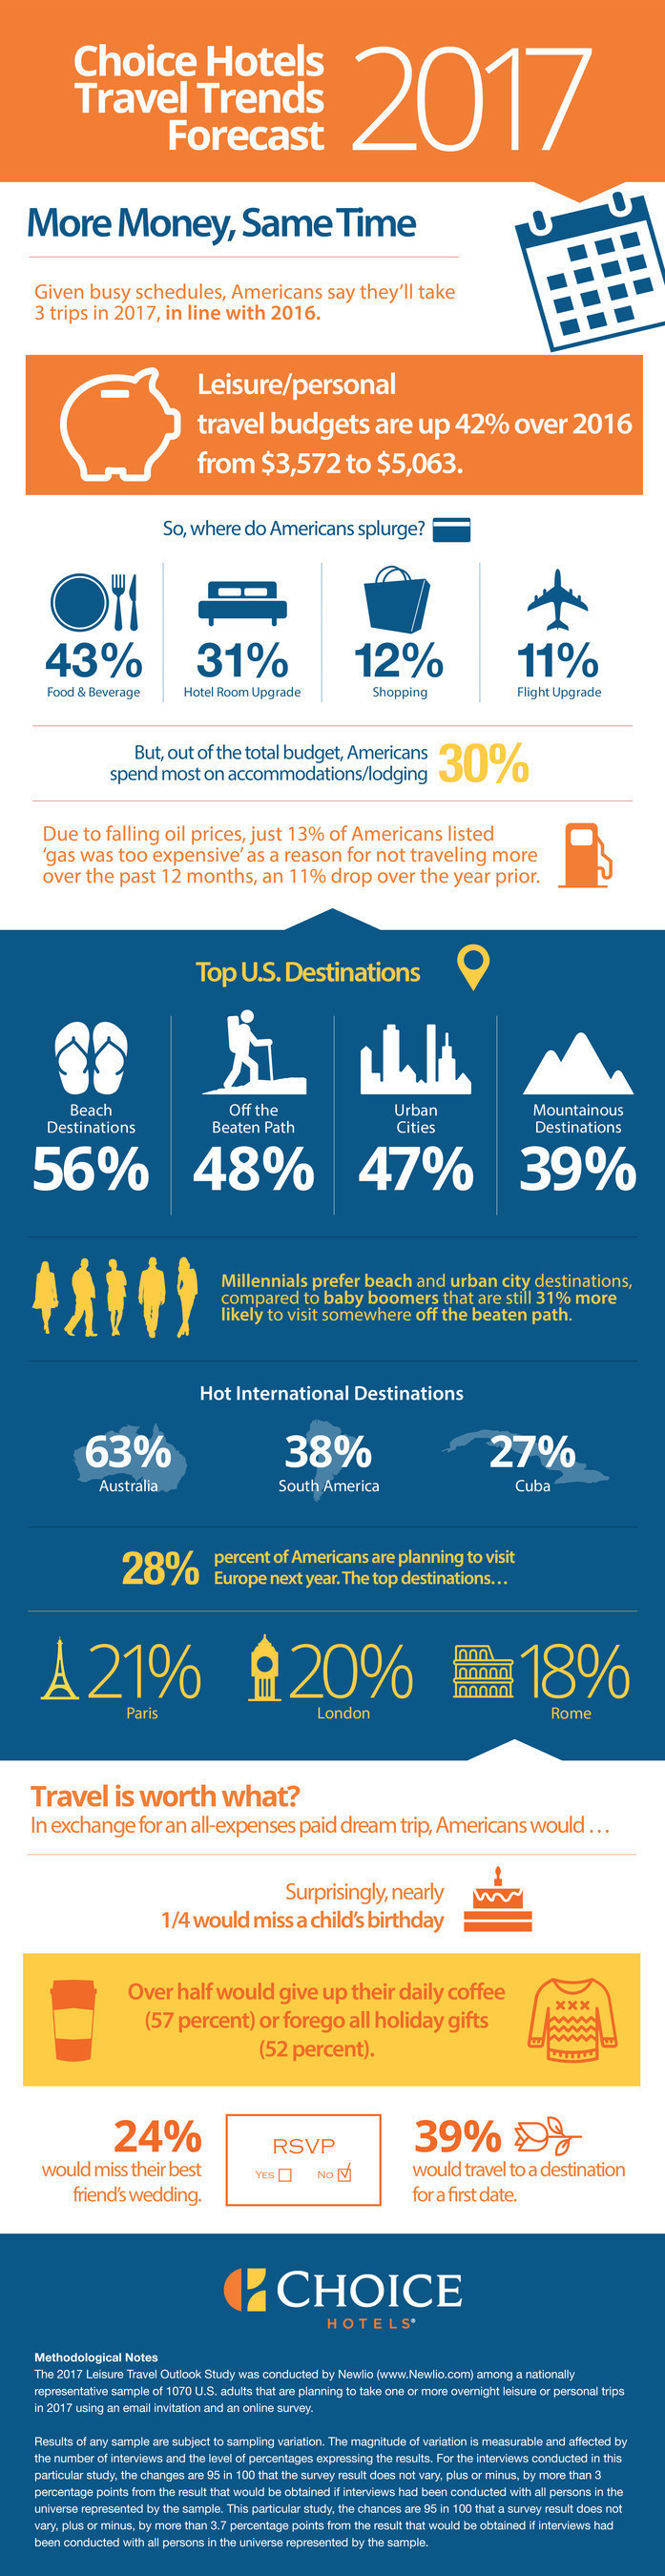 2017 Travel Trends Outlook Infographic